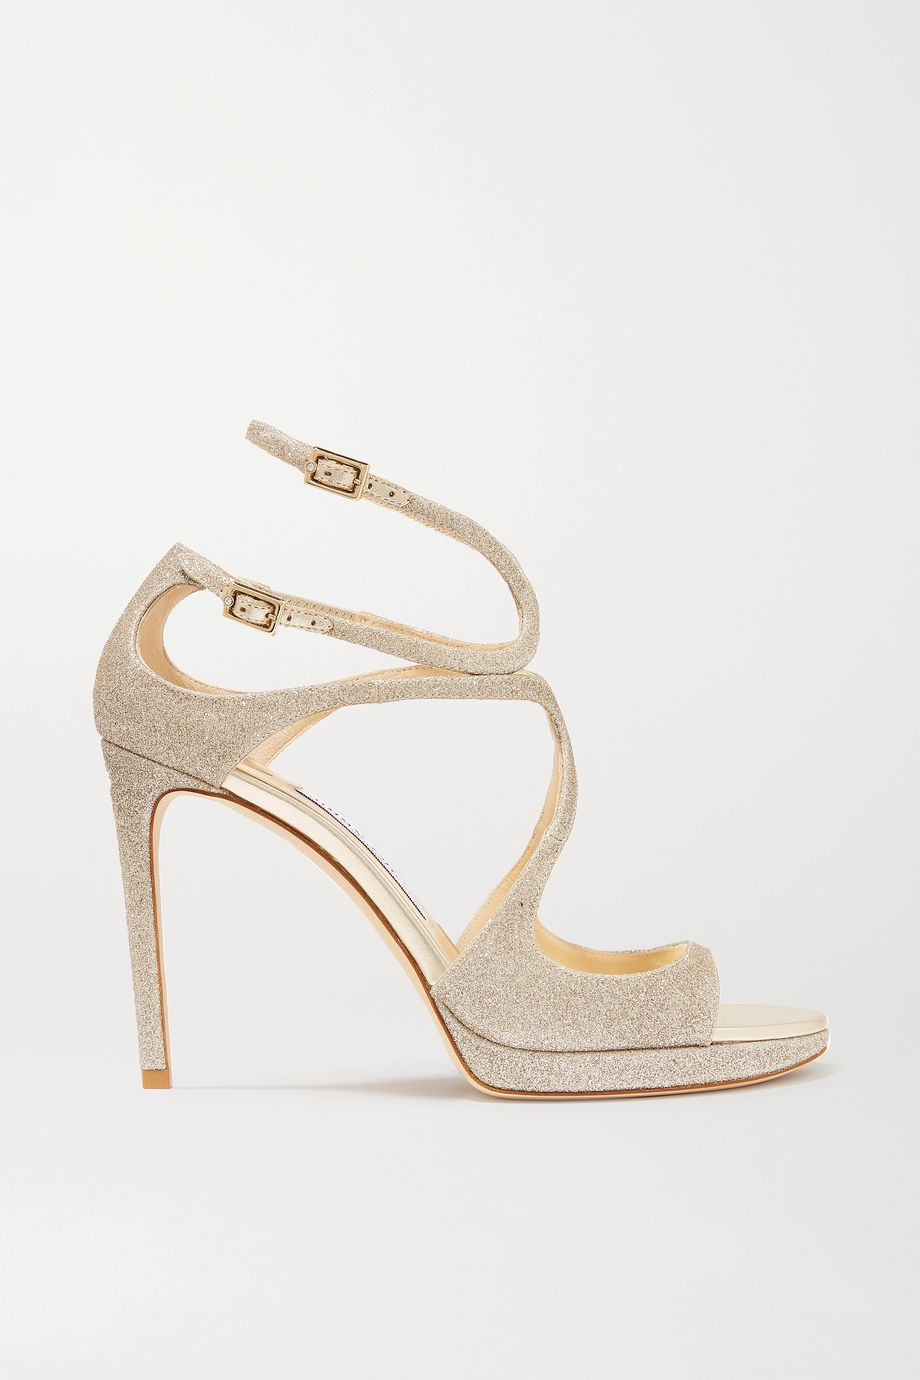 Jimmy Choo Lance 100 glittered leather platform sandals